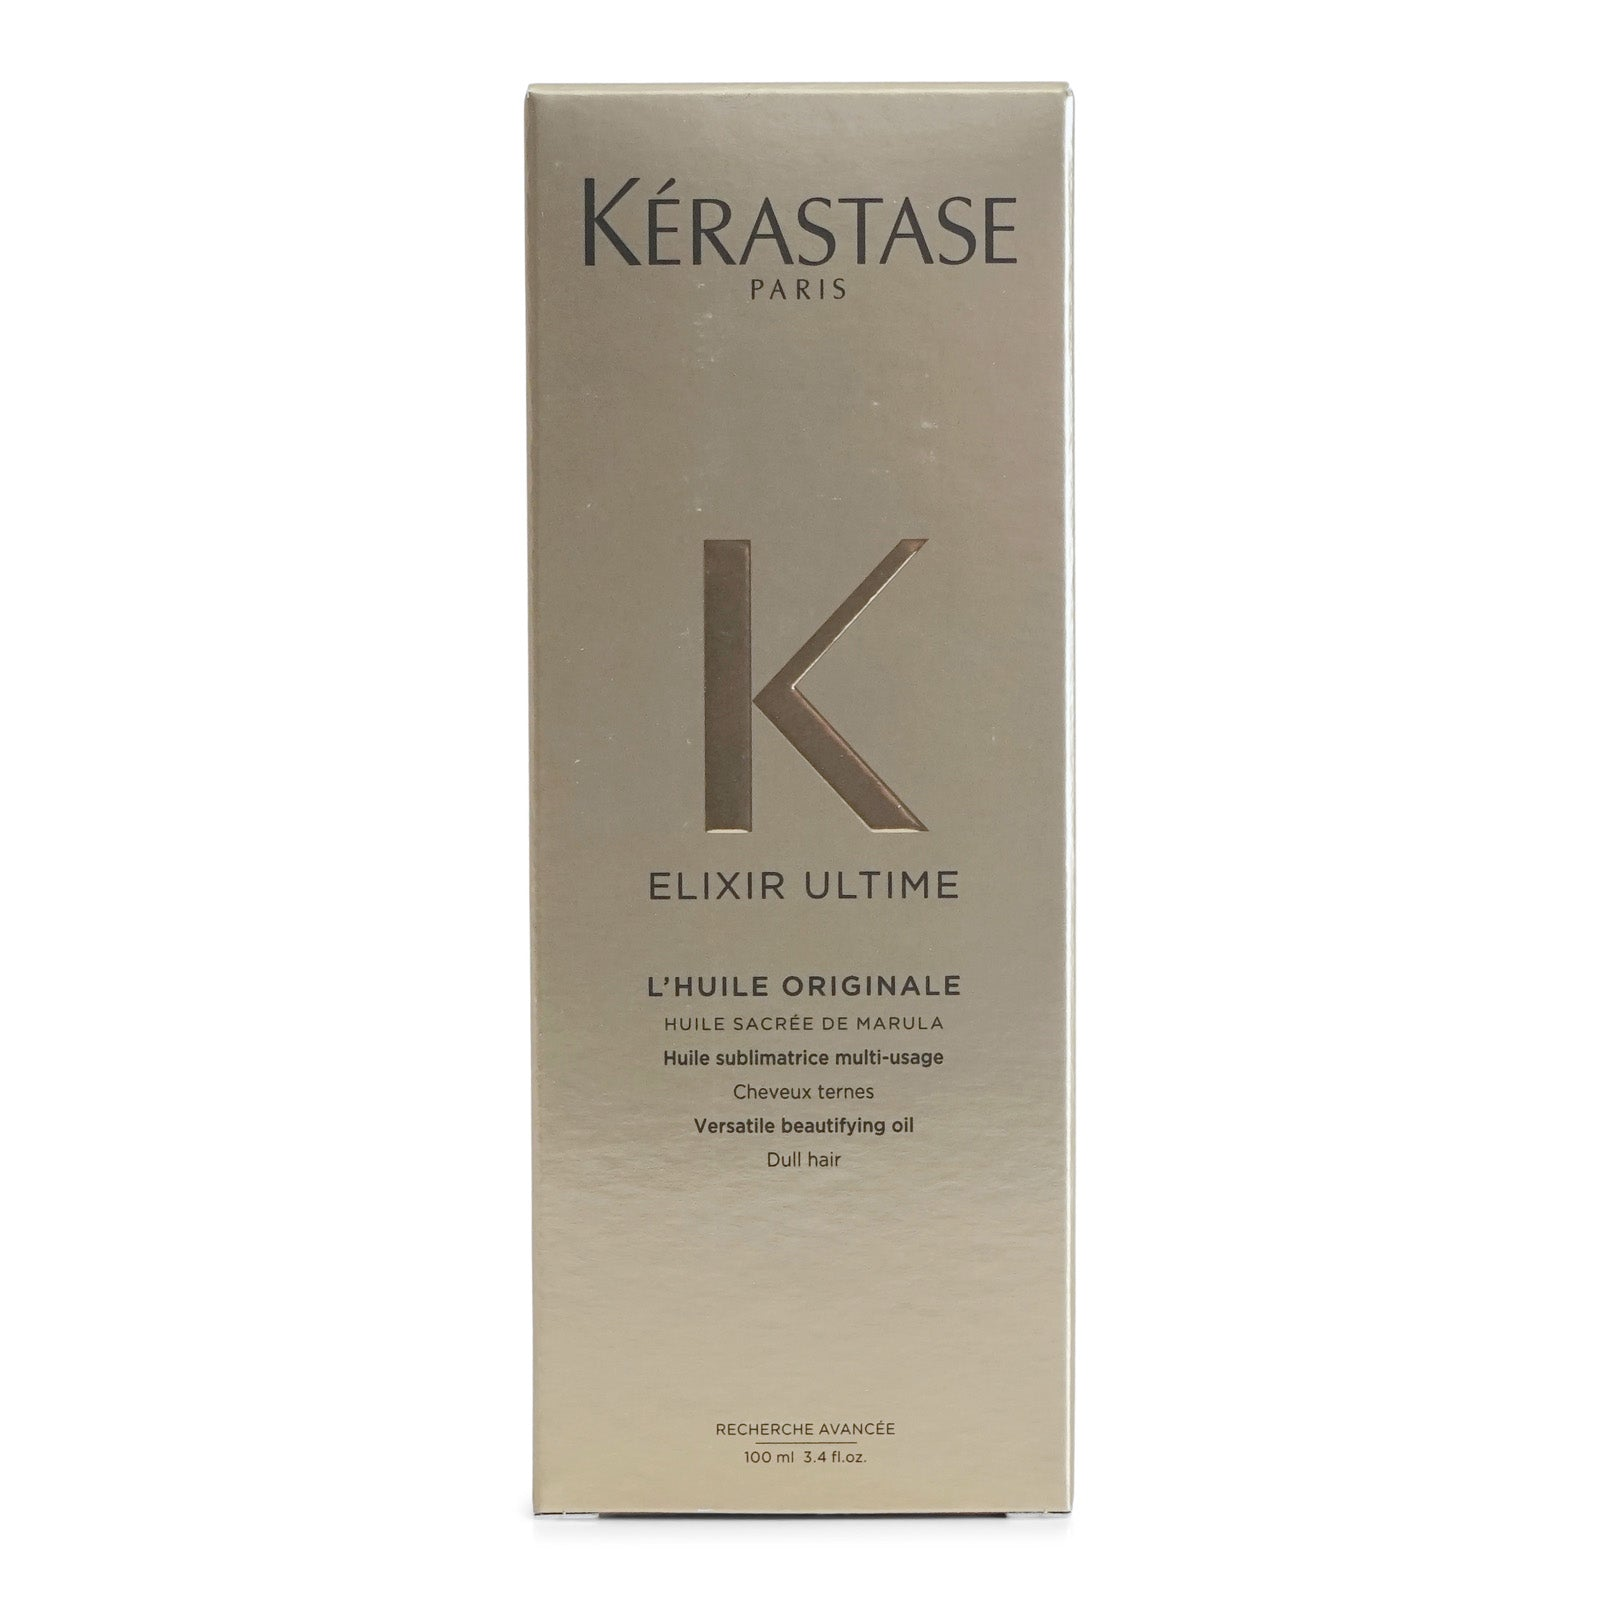 Kerastase Elixir Ultime Lhuile Original Hair Oil (6/cs)